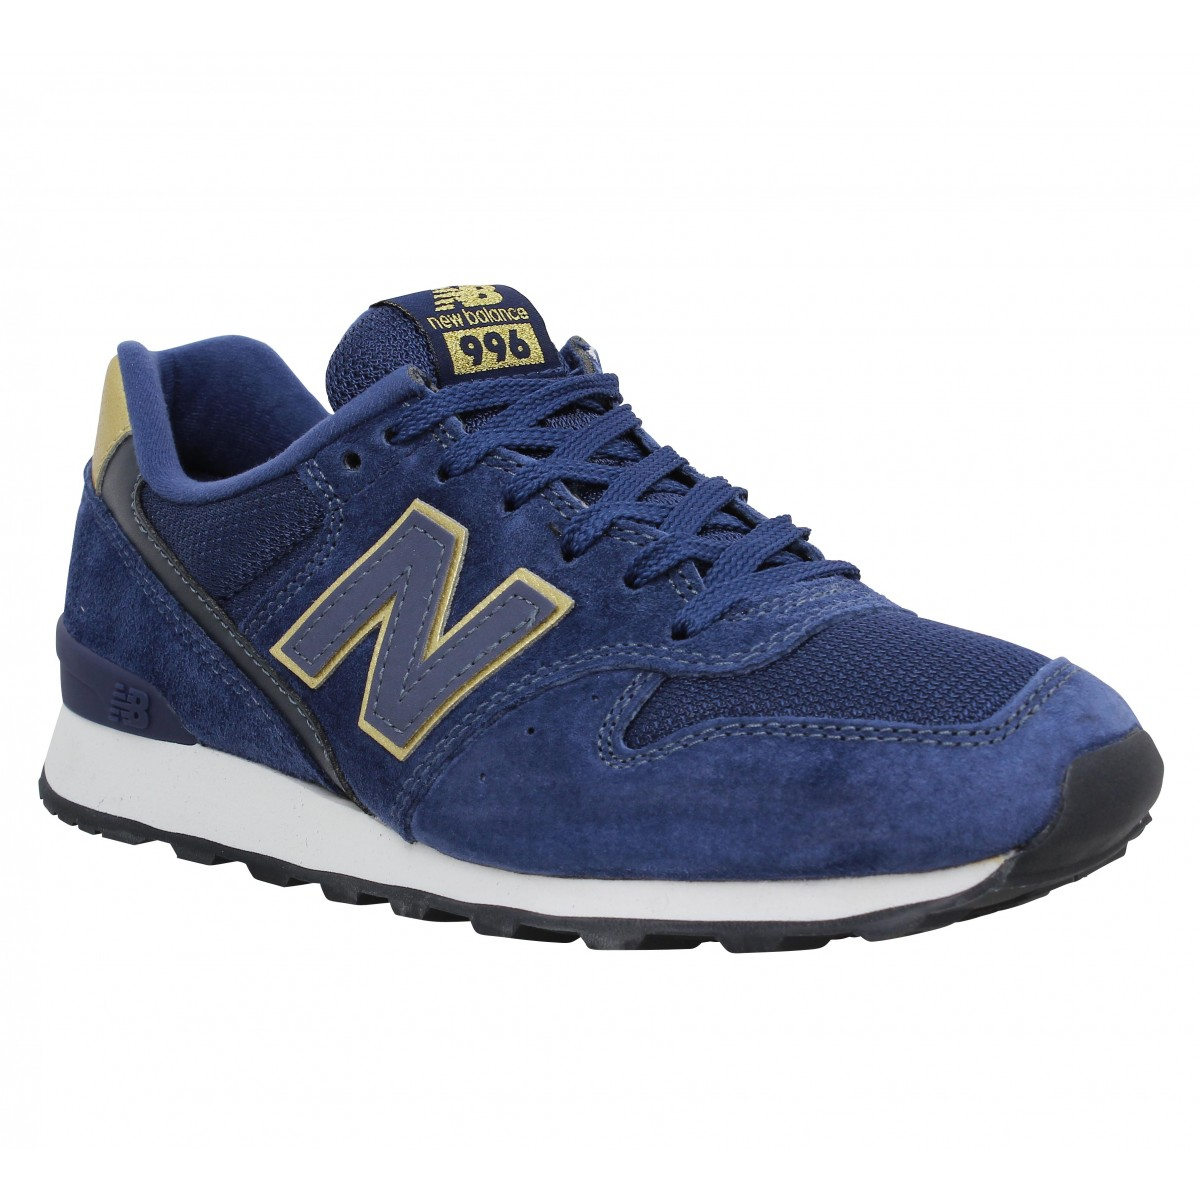 Baskets NEW BALANCE 996 velours + toile Femme Navy Or